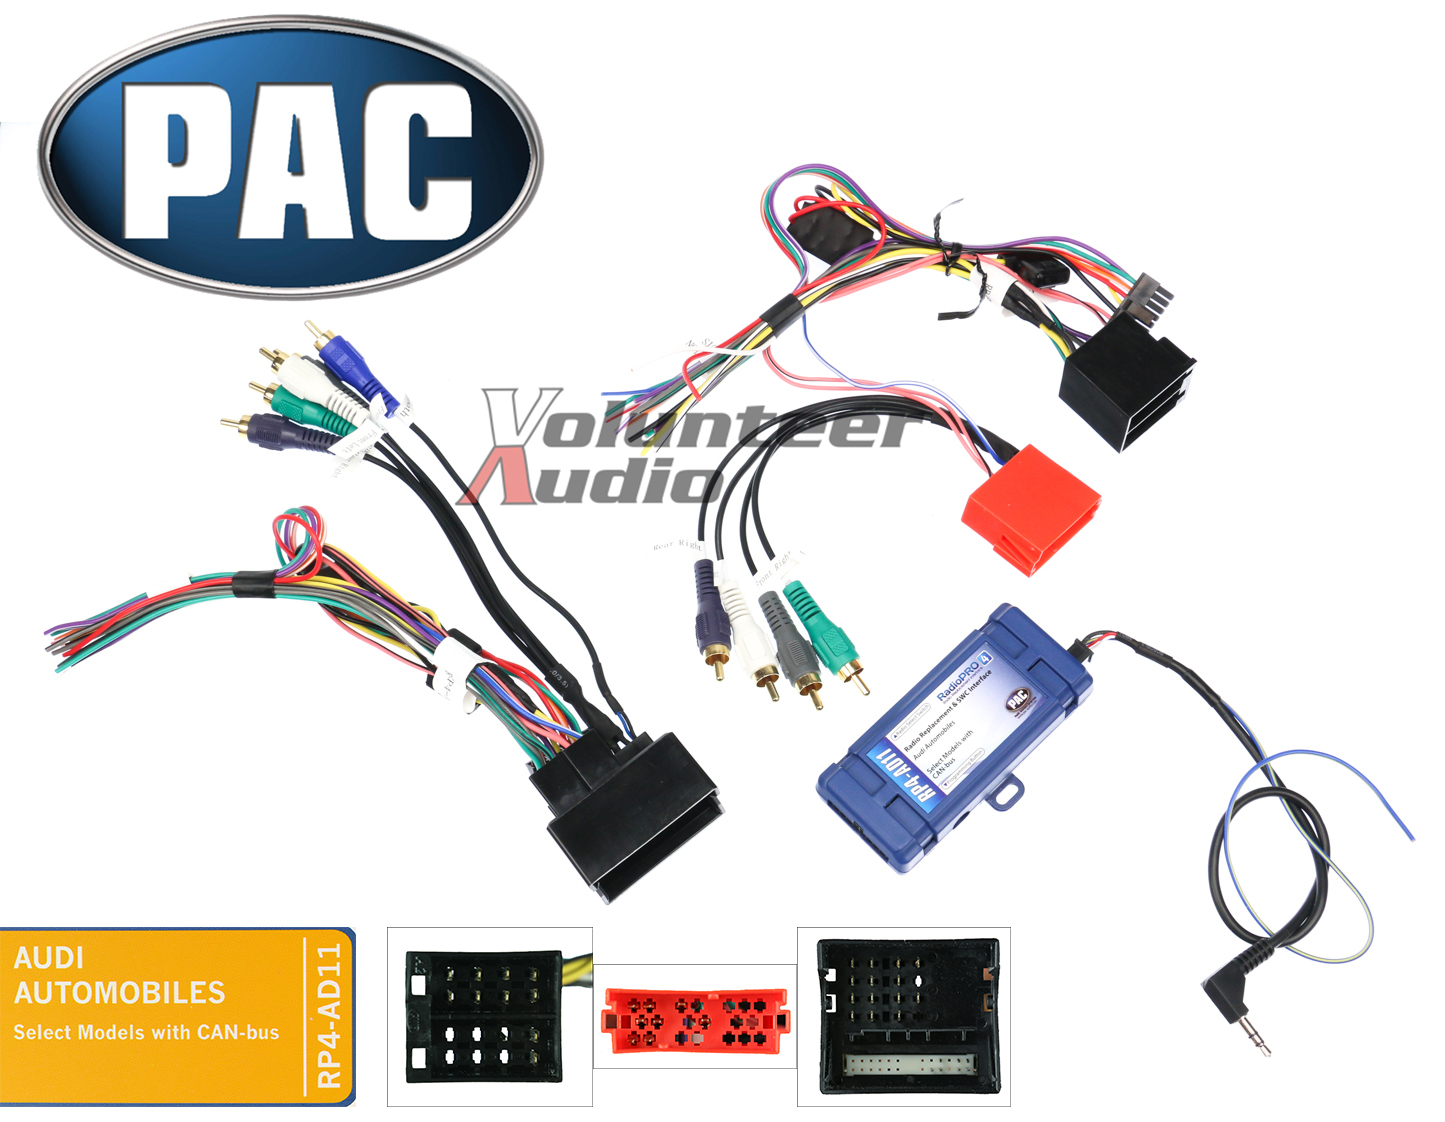 pac sni 15 wiring diagram pac radio pro wiring diagram #4